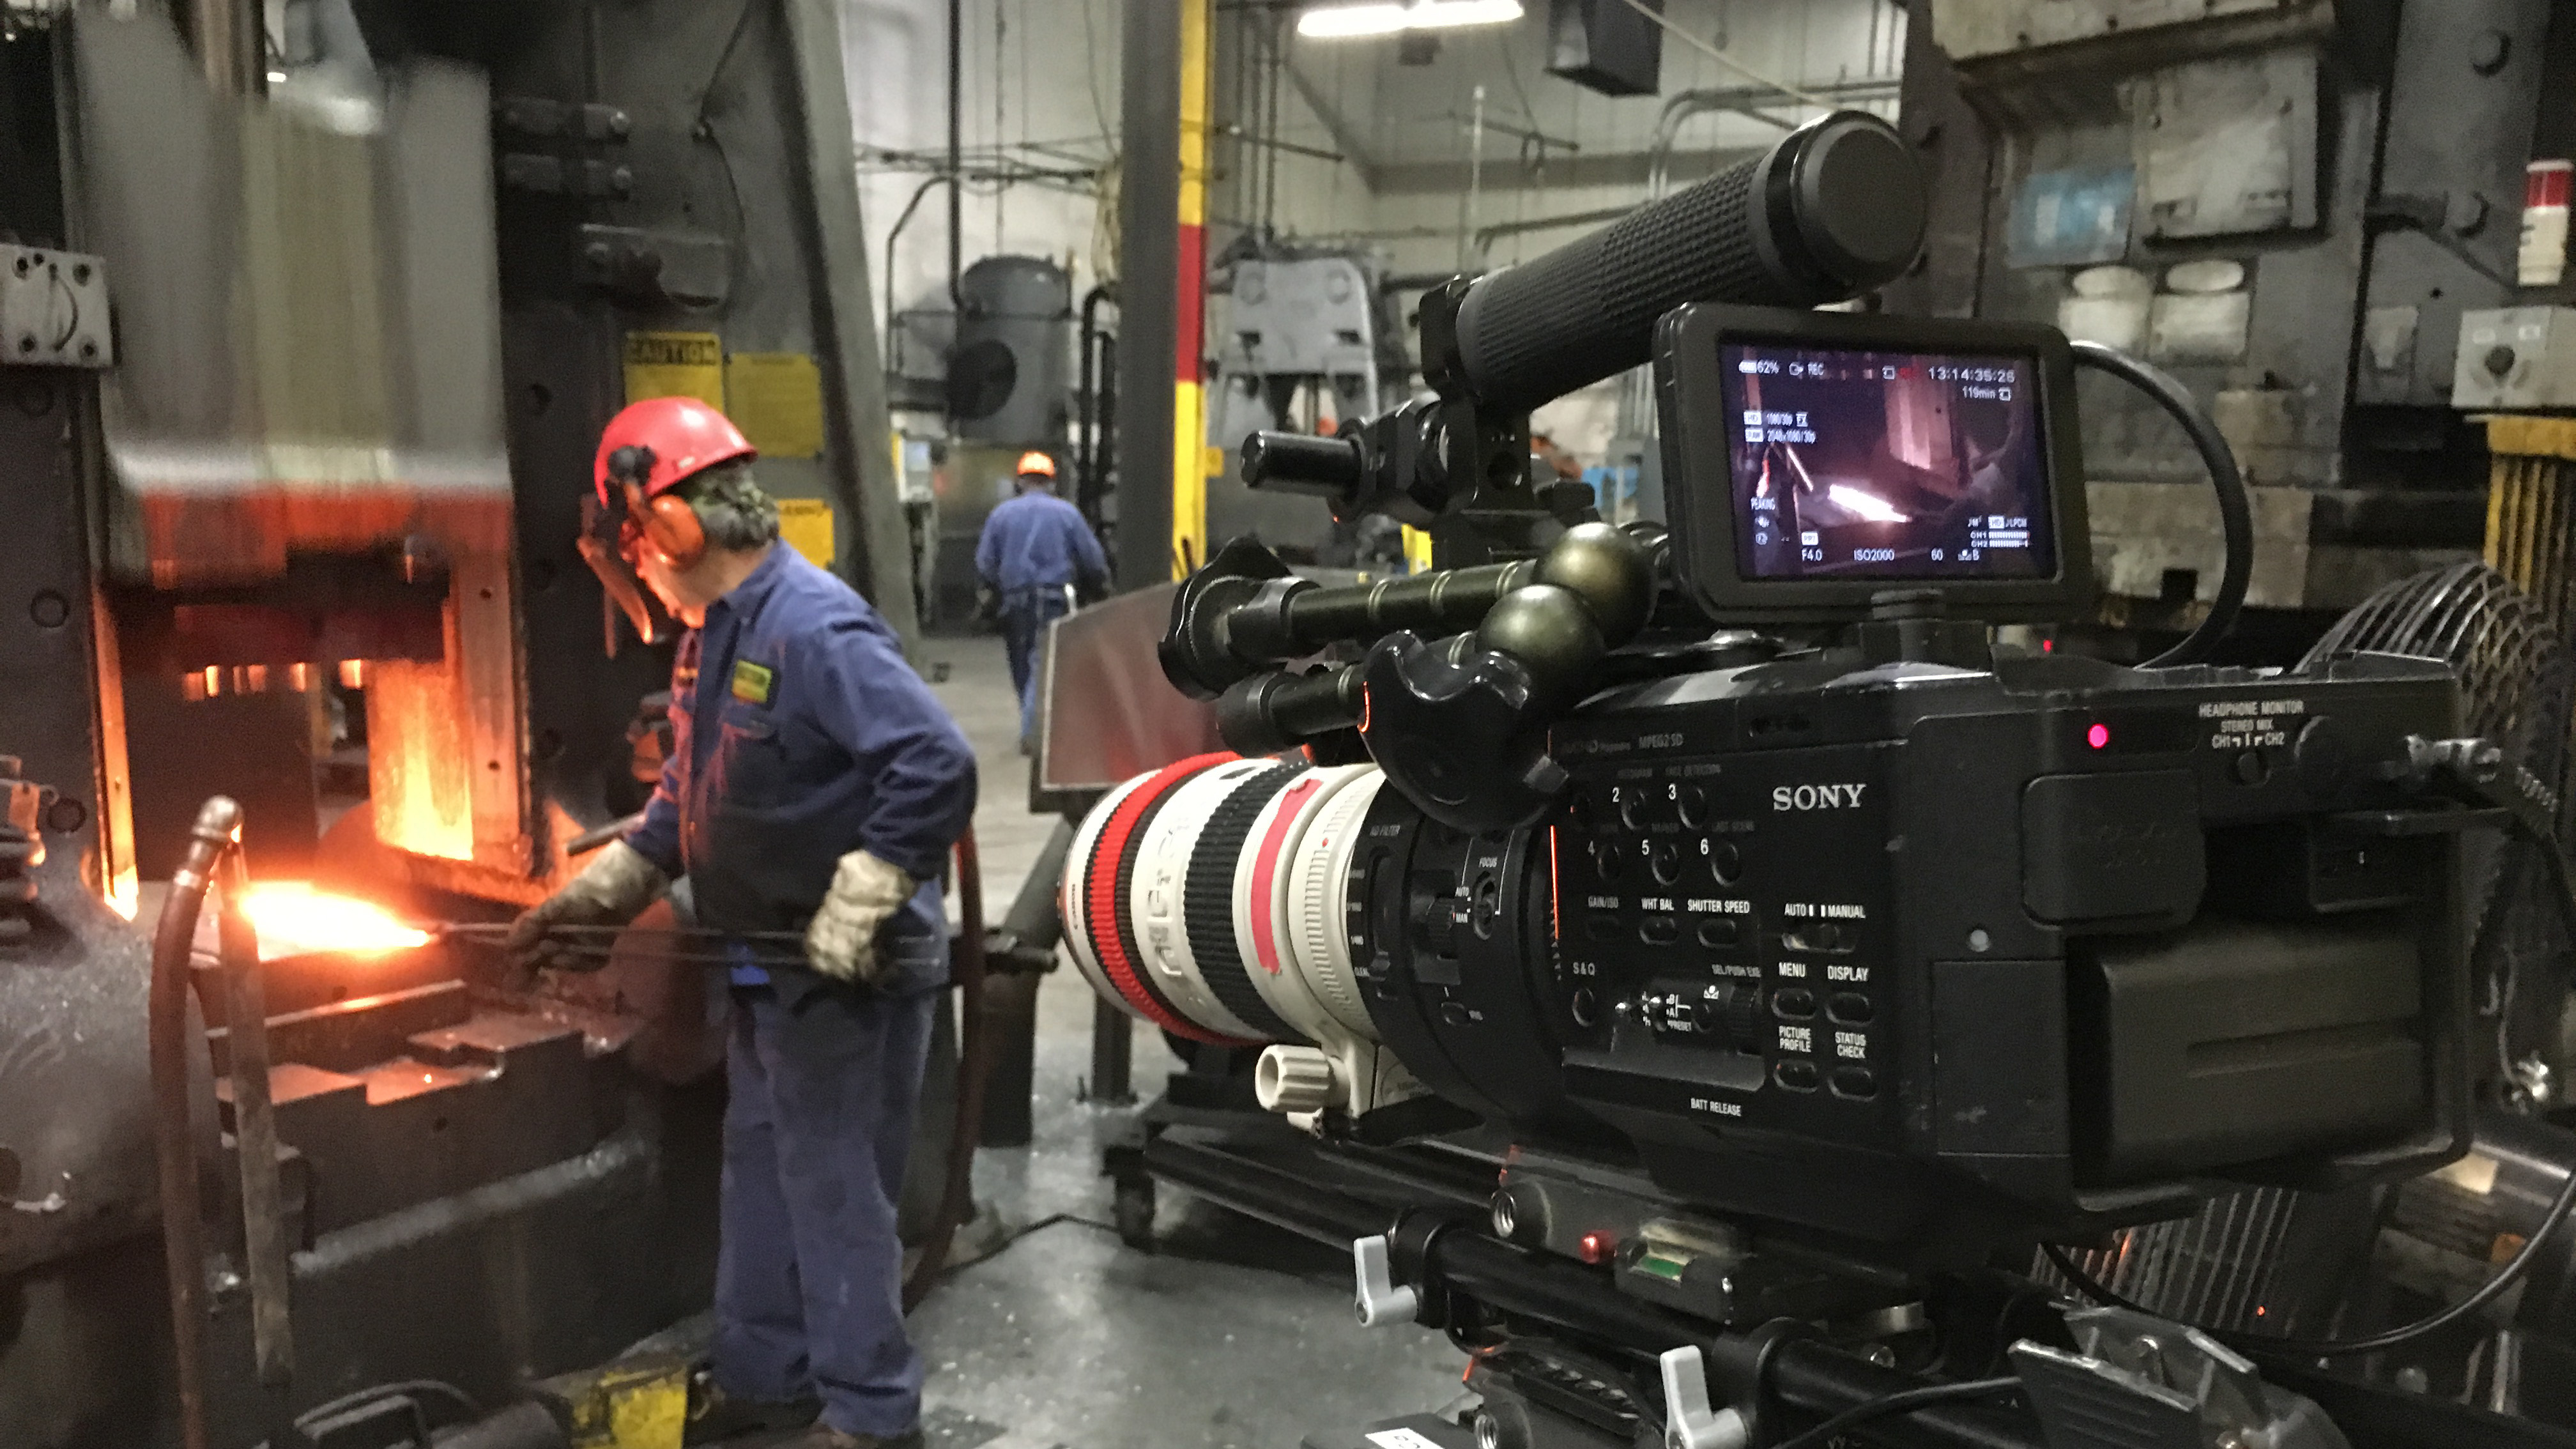 a professional video camera capturing someone working in a kiln